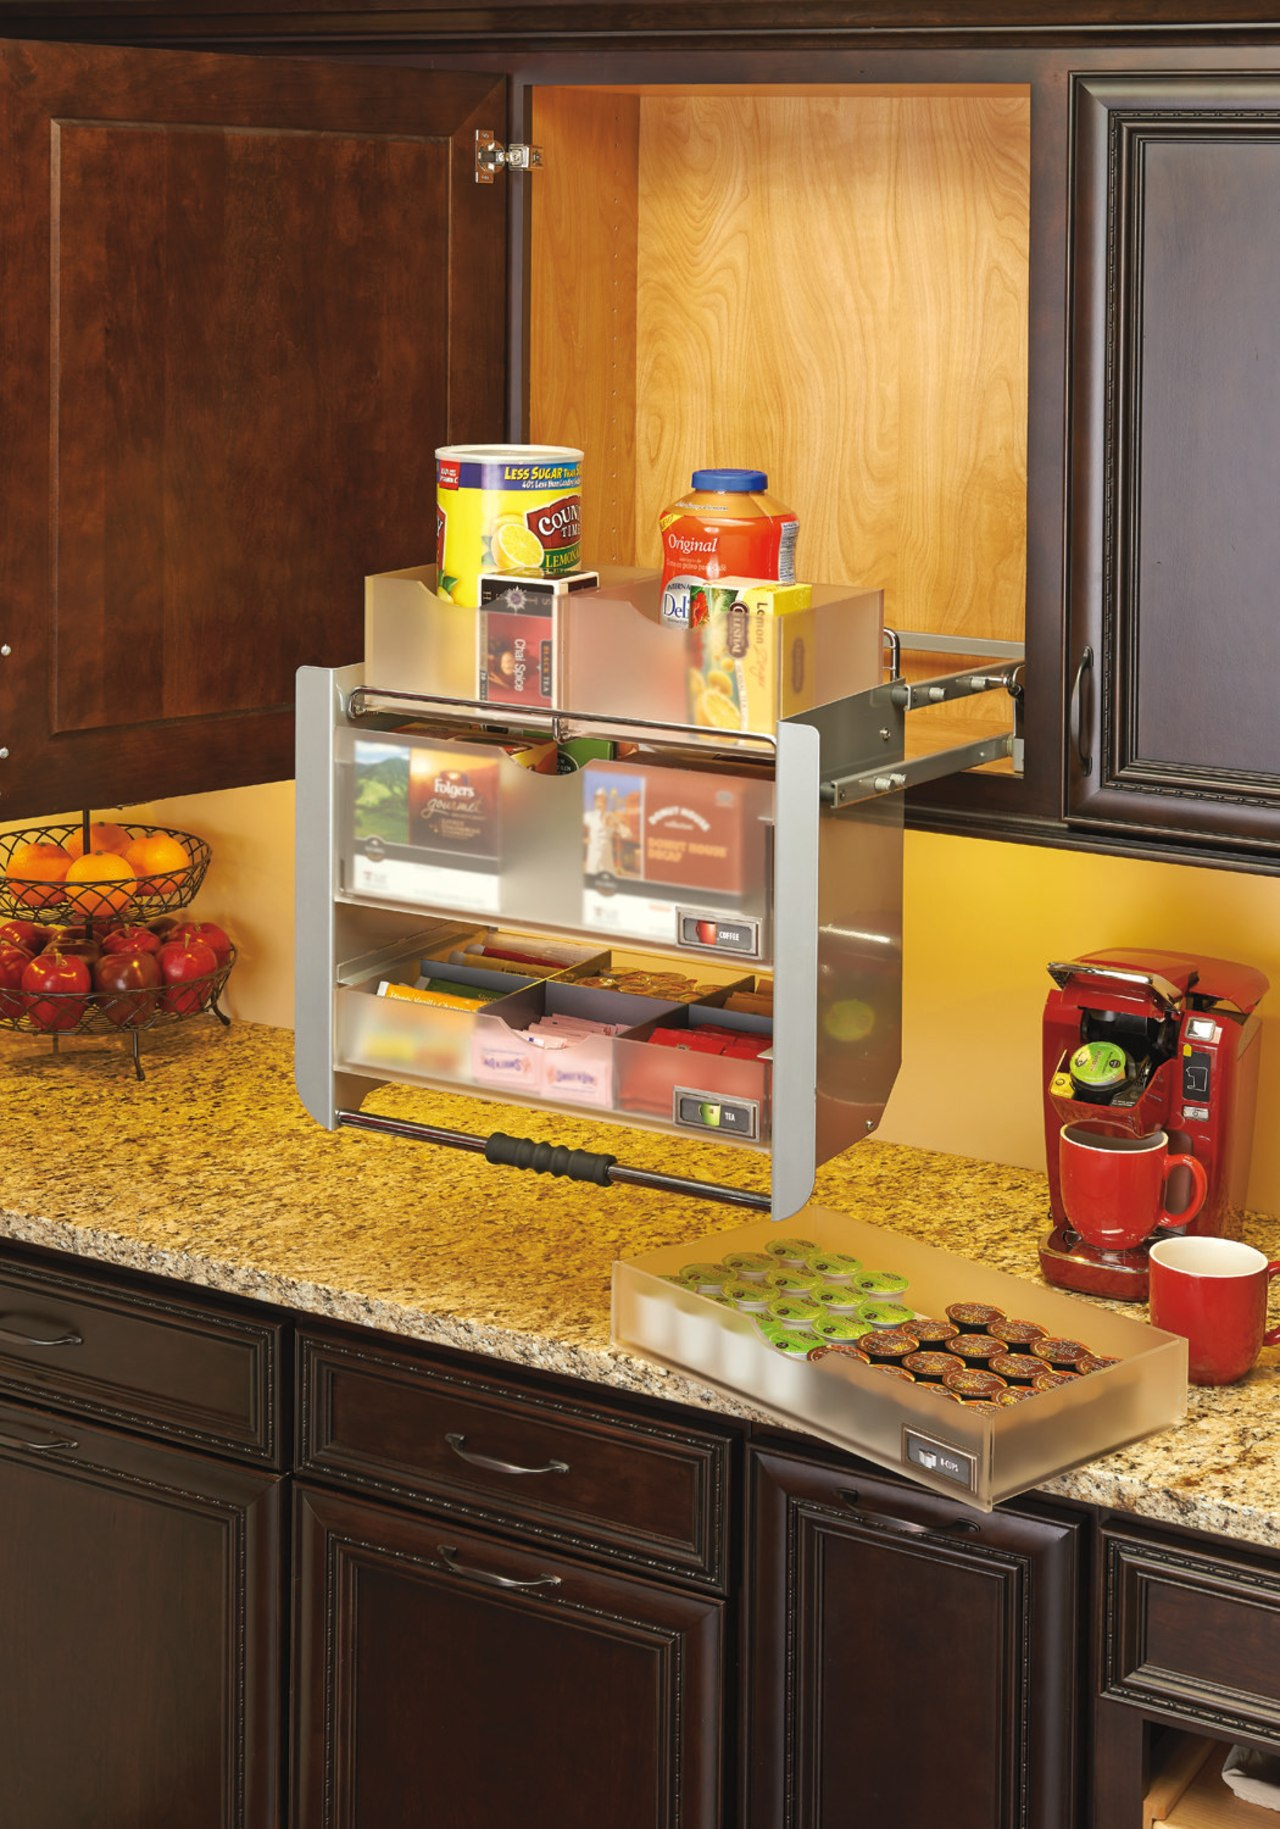 The Rev-A-Shelf 5UPD fits a 24 inch cabinet. cabinetry, countertop, interior design, kitchen, room, shelf, shelving, brown, orange